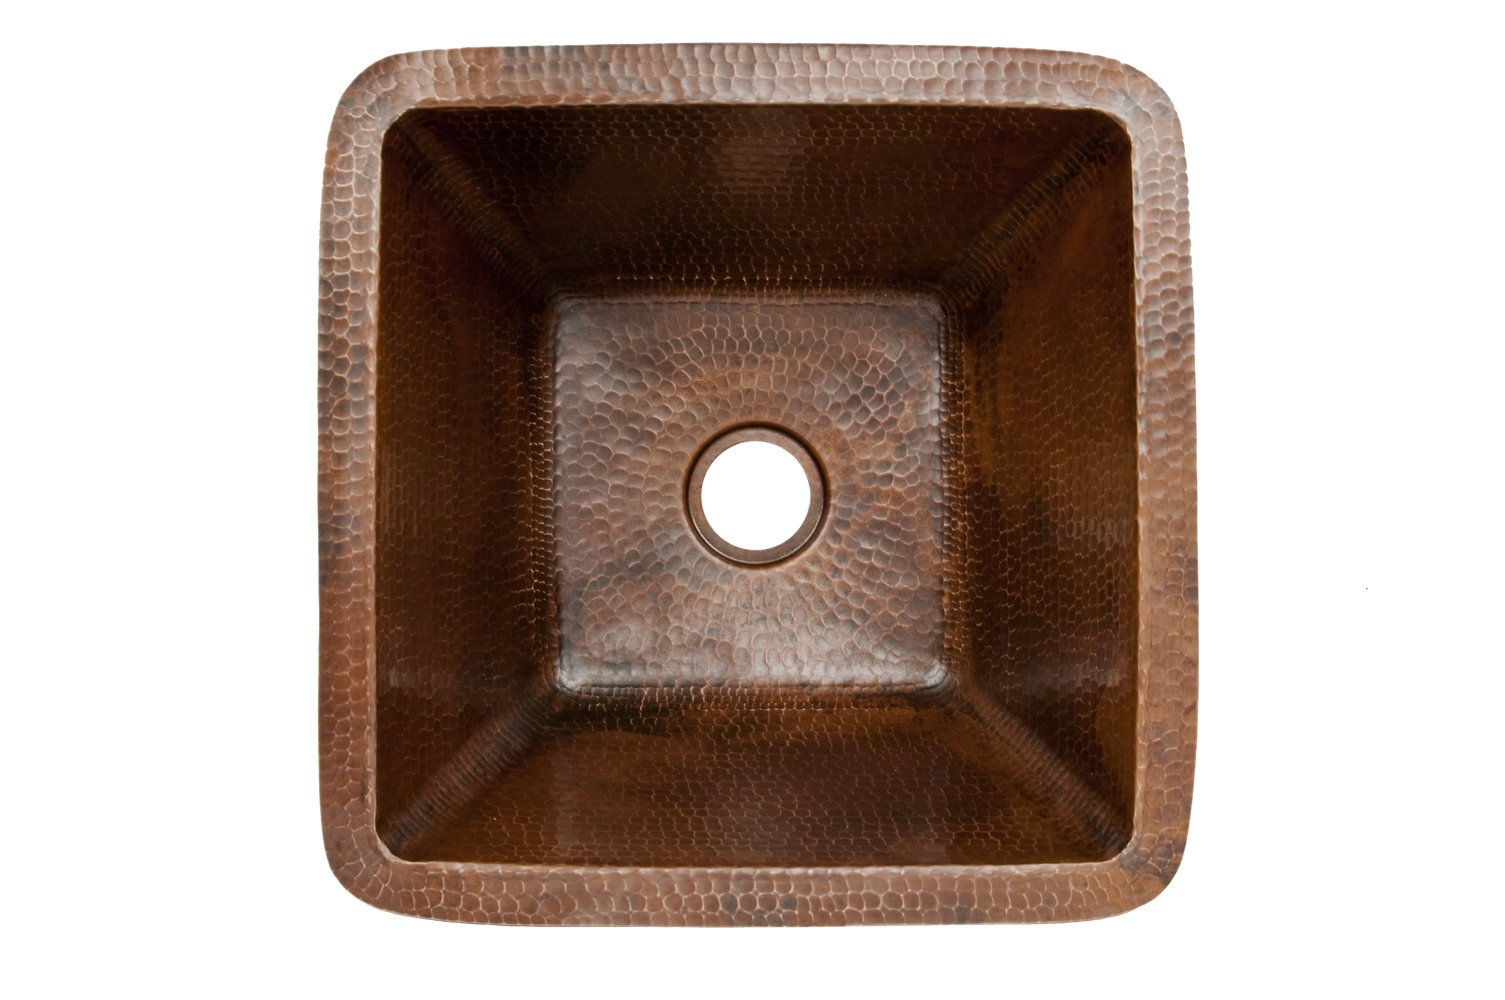 Premier Copper Products BS15DB2 15-Inch Universal Square Hammered Copper Bar Sink with 2-Inch Drain Size, Oil Rubbed Bronze by Premier Copper Products (Image #2)